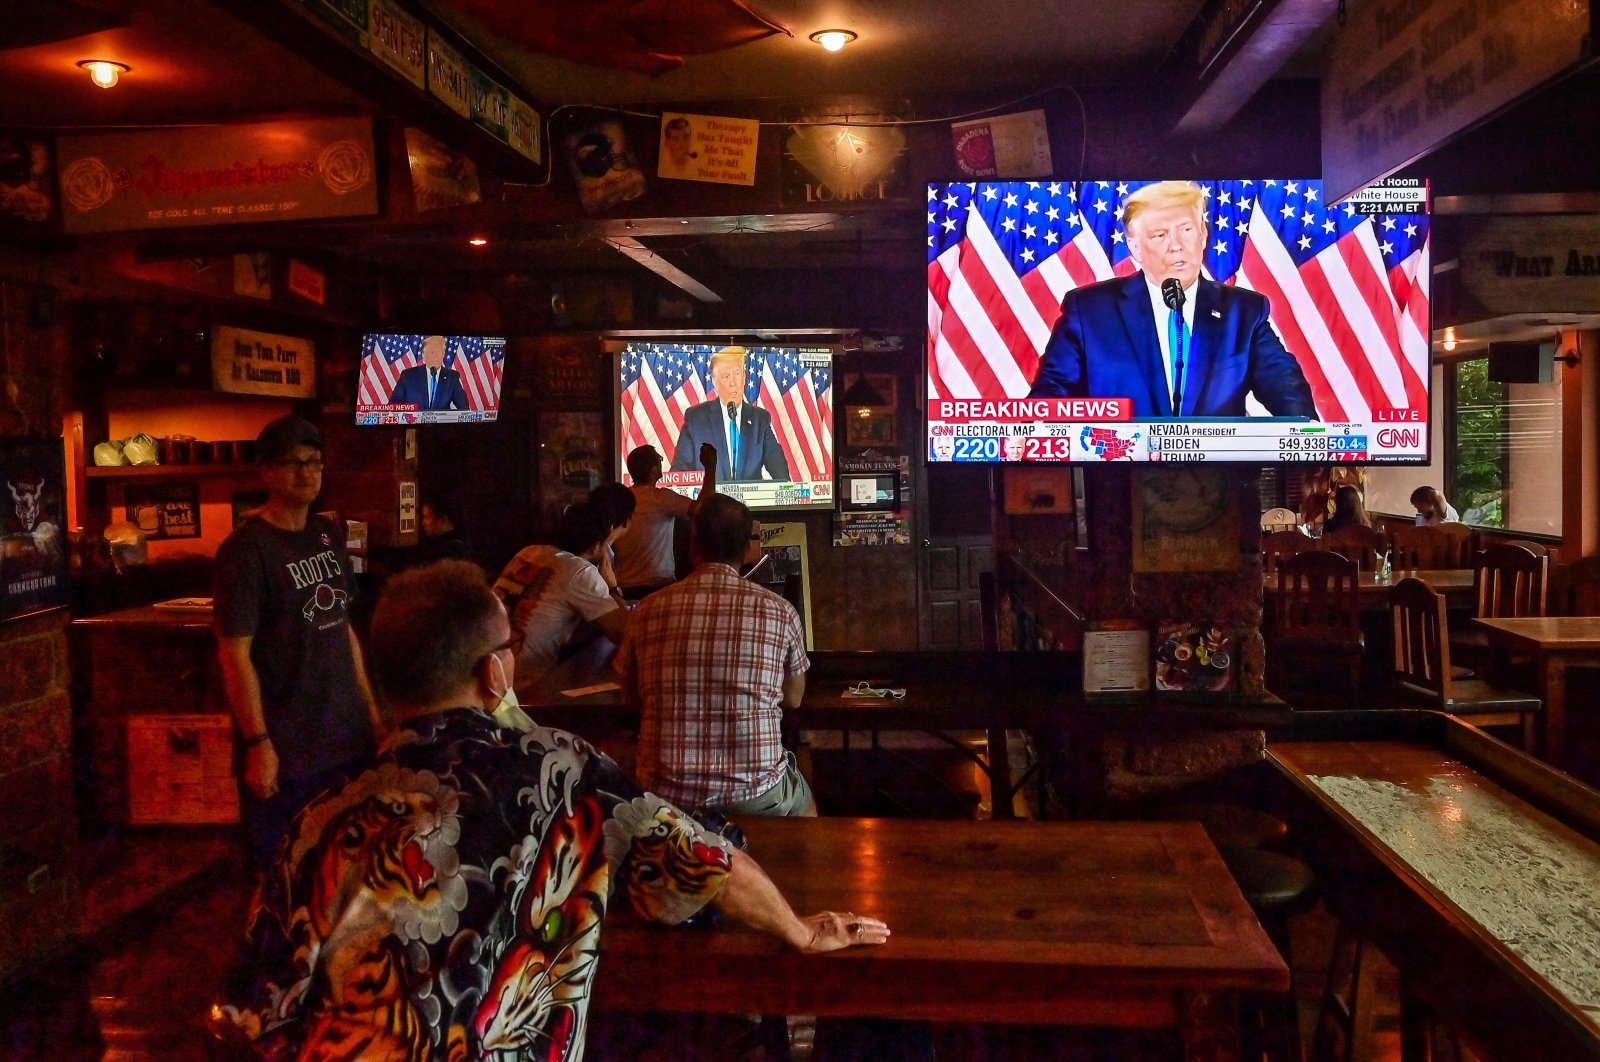 U.S. President Donald Trump speaks as Democratic Party supporters watch the vote count for the U.S. elections, in a restaurant in Bangkok, Thailand, Nov. 4, 2020. (AFP Photo)